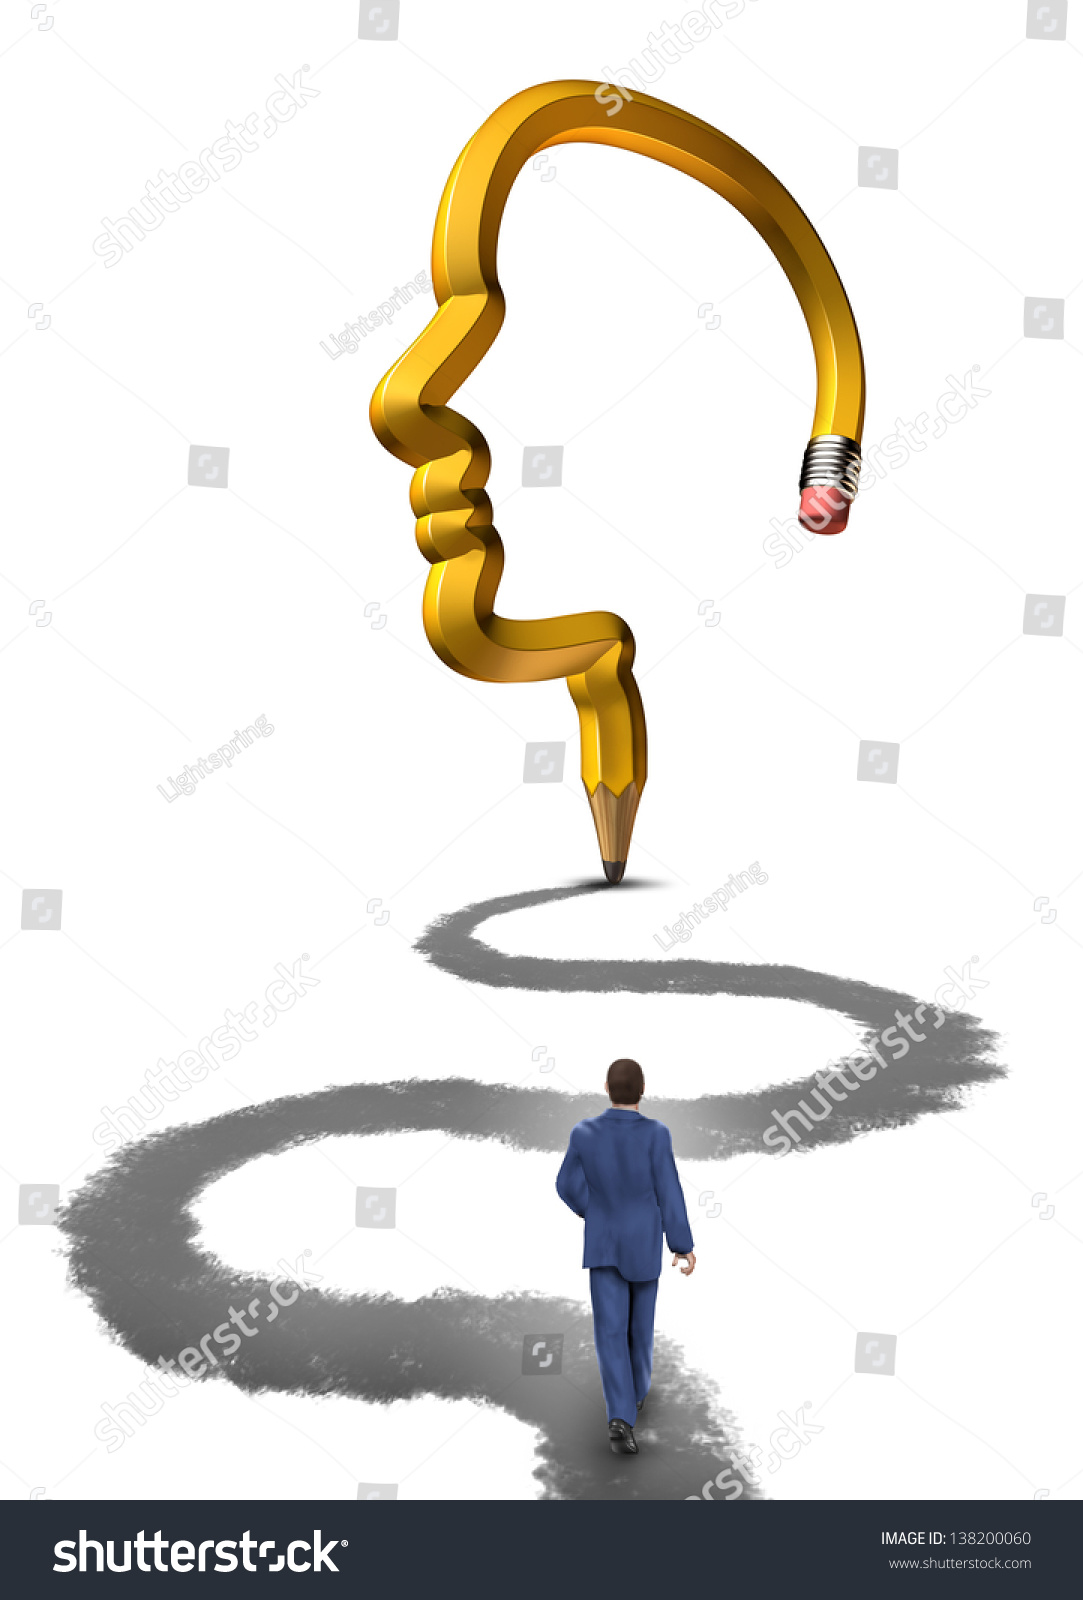 planning your future strategic career plan stock illustration planning your future a strategic career plan as a businessman walking on a path drawn